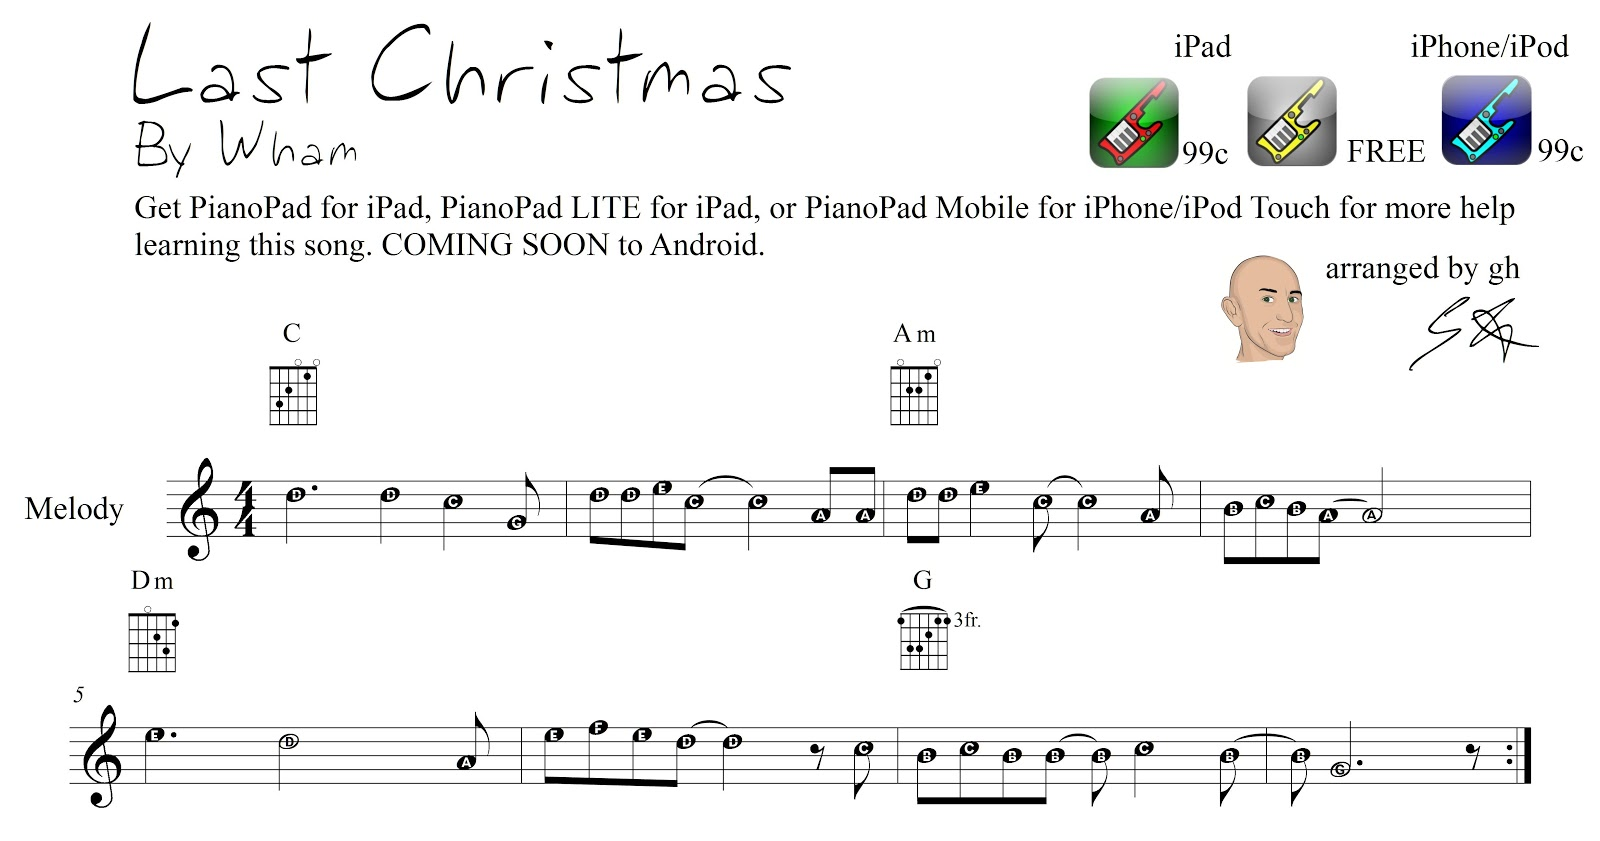 Pianopad Upload Community As Requested Last Christmas By Wham